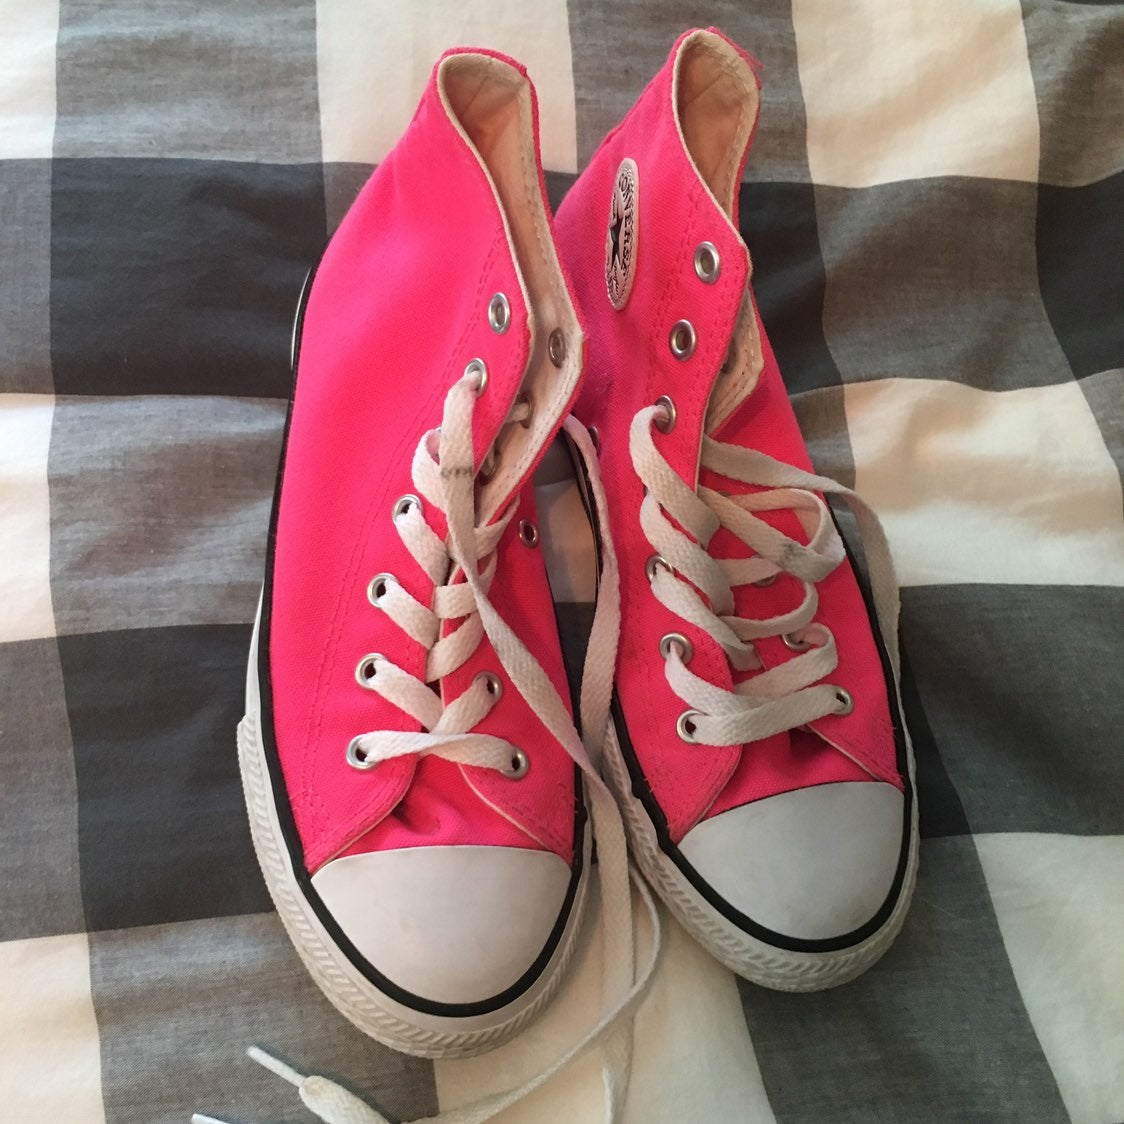 Converse High Tops Hot Pink 3y